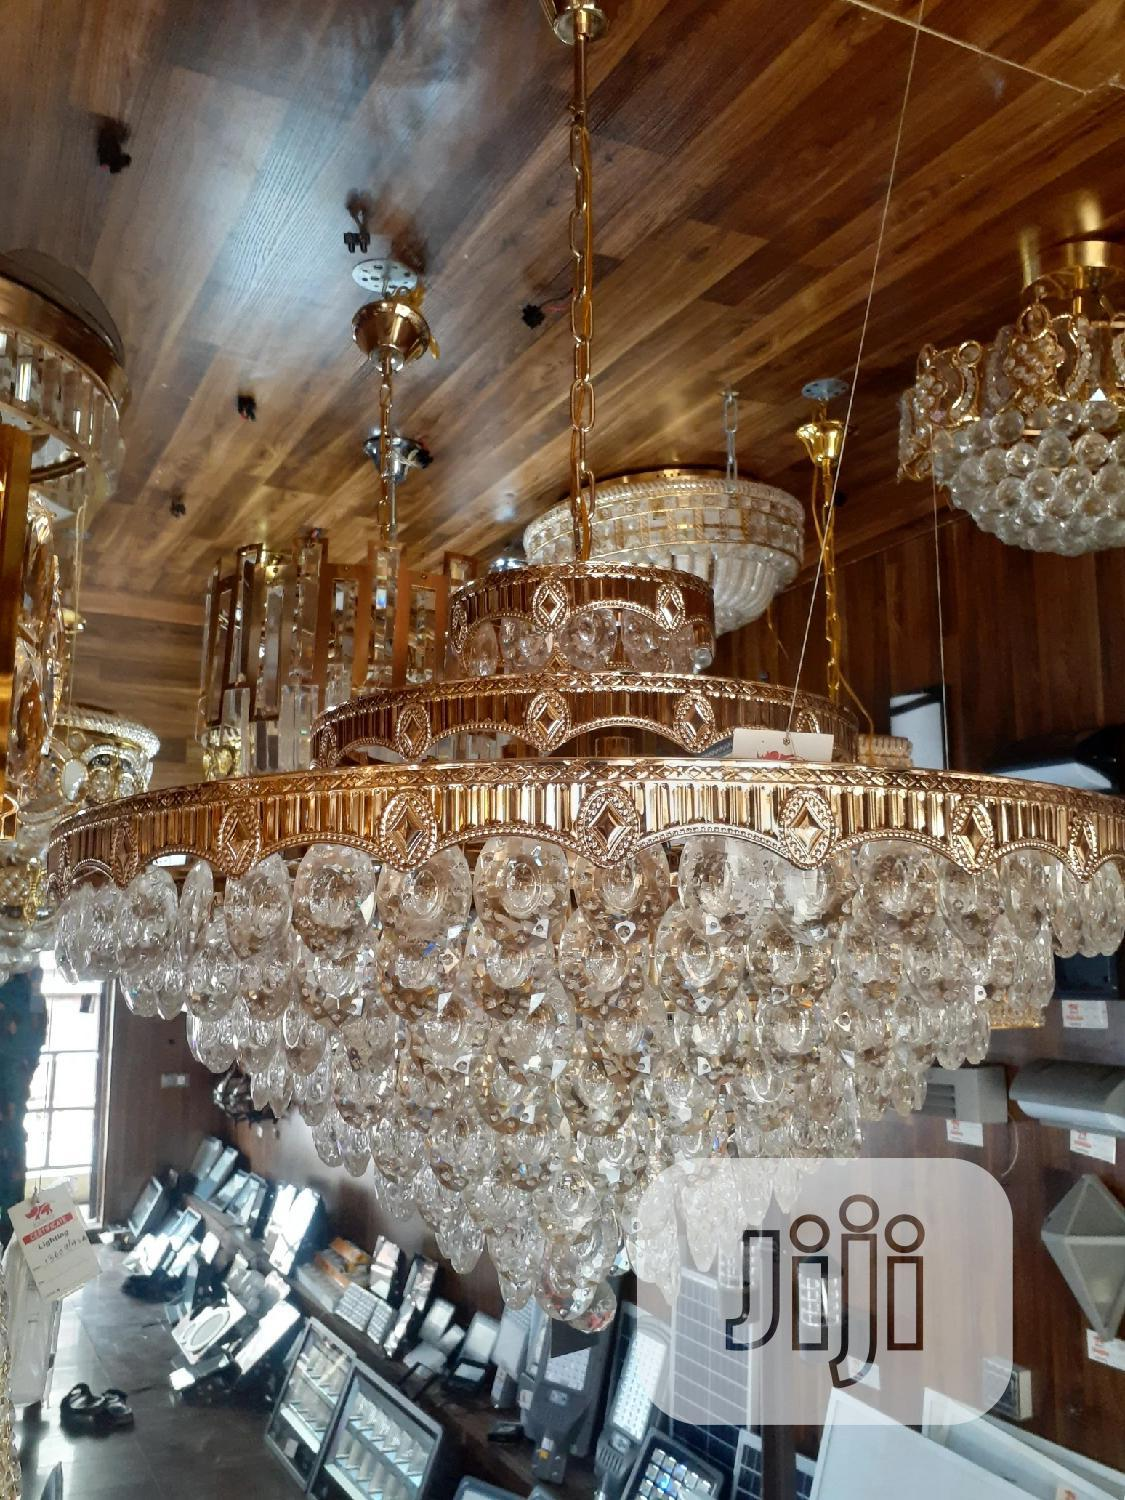 Chandelier Crystals Bulb And Let 4ft